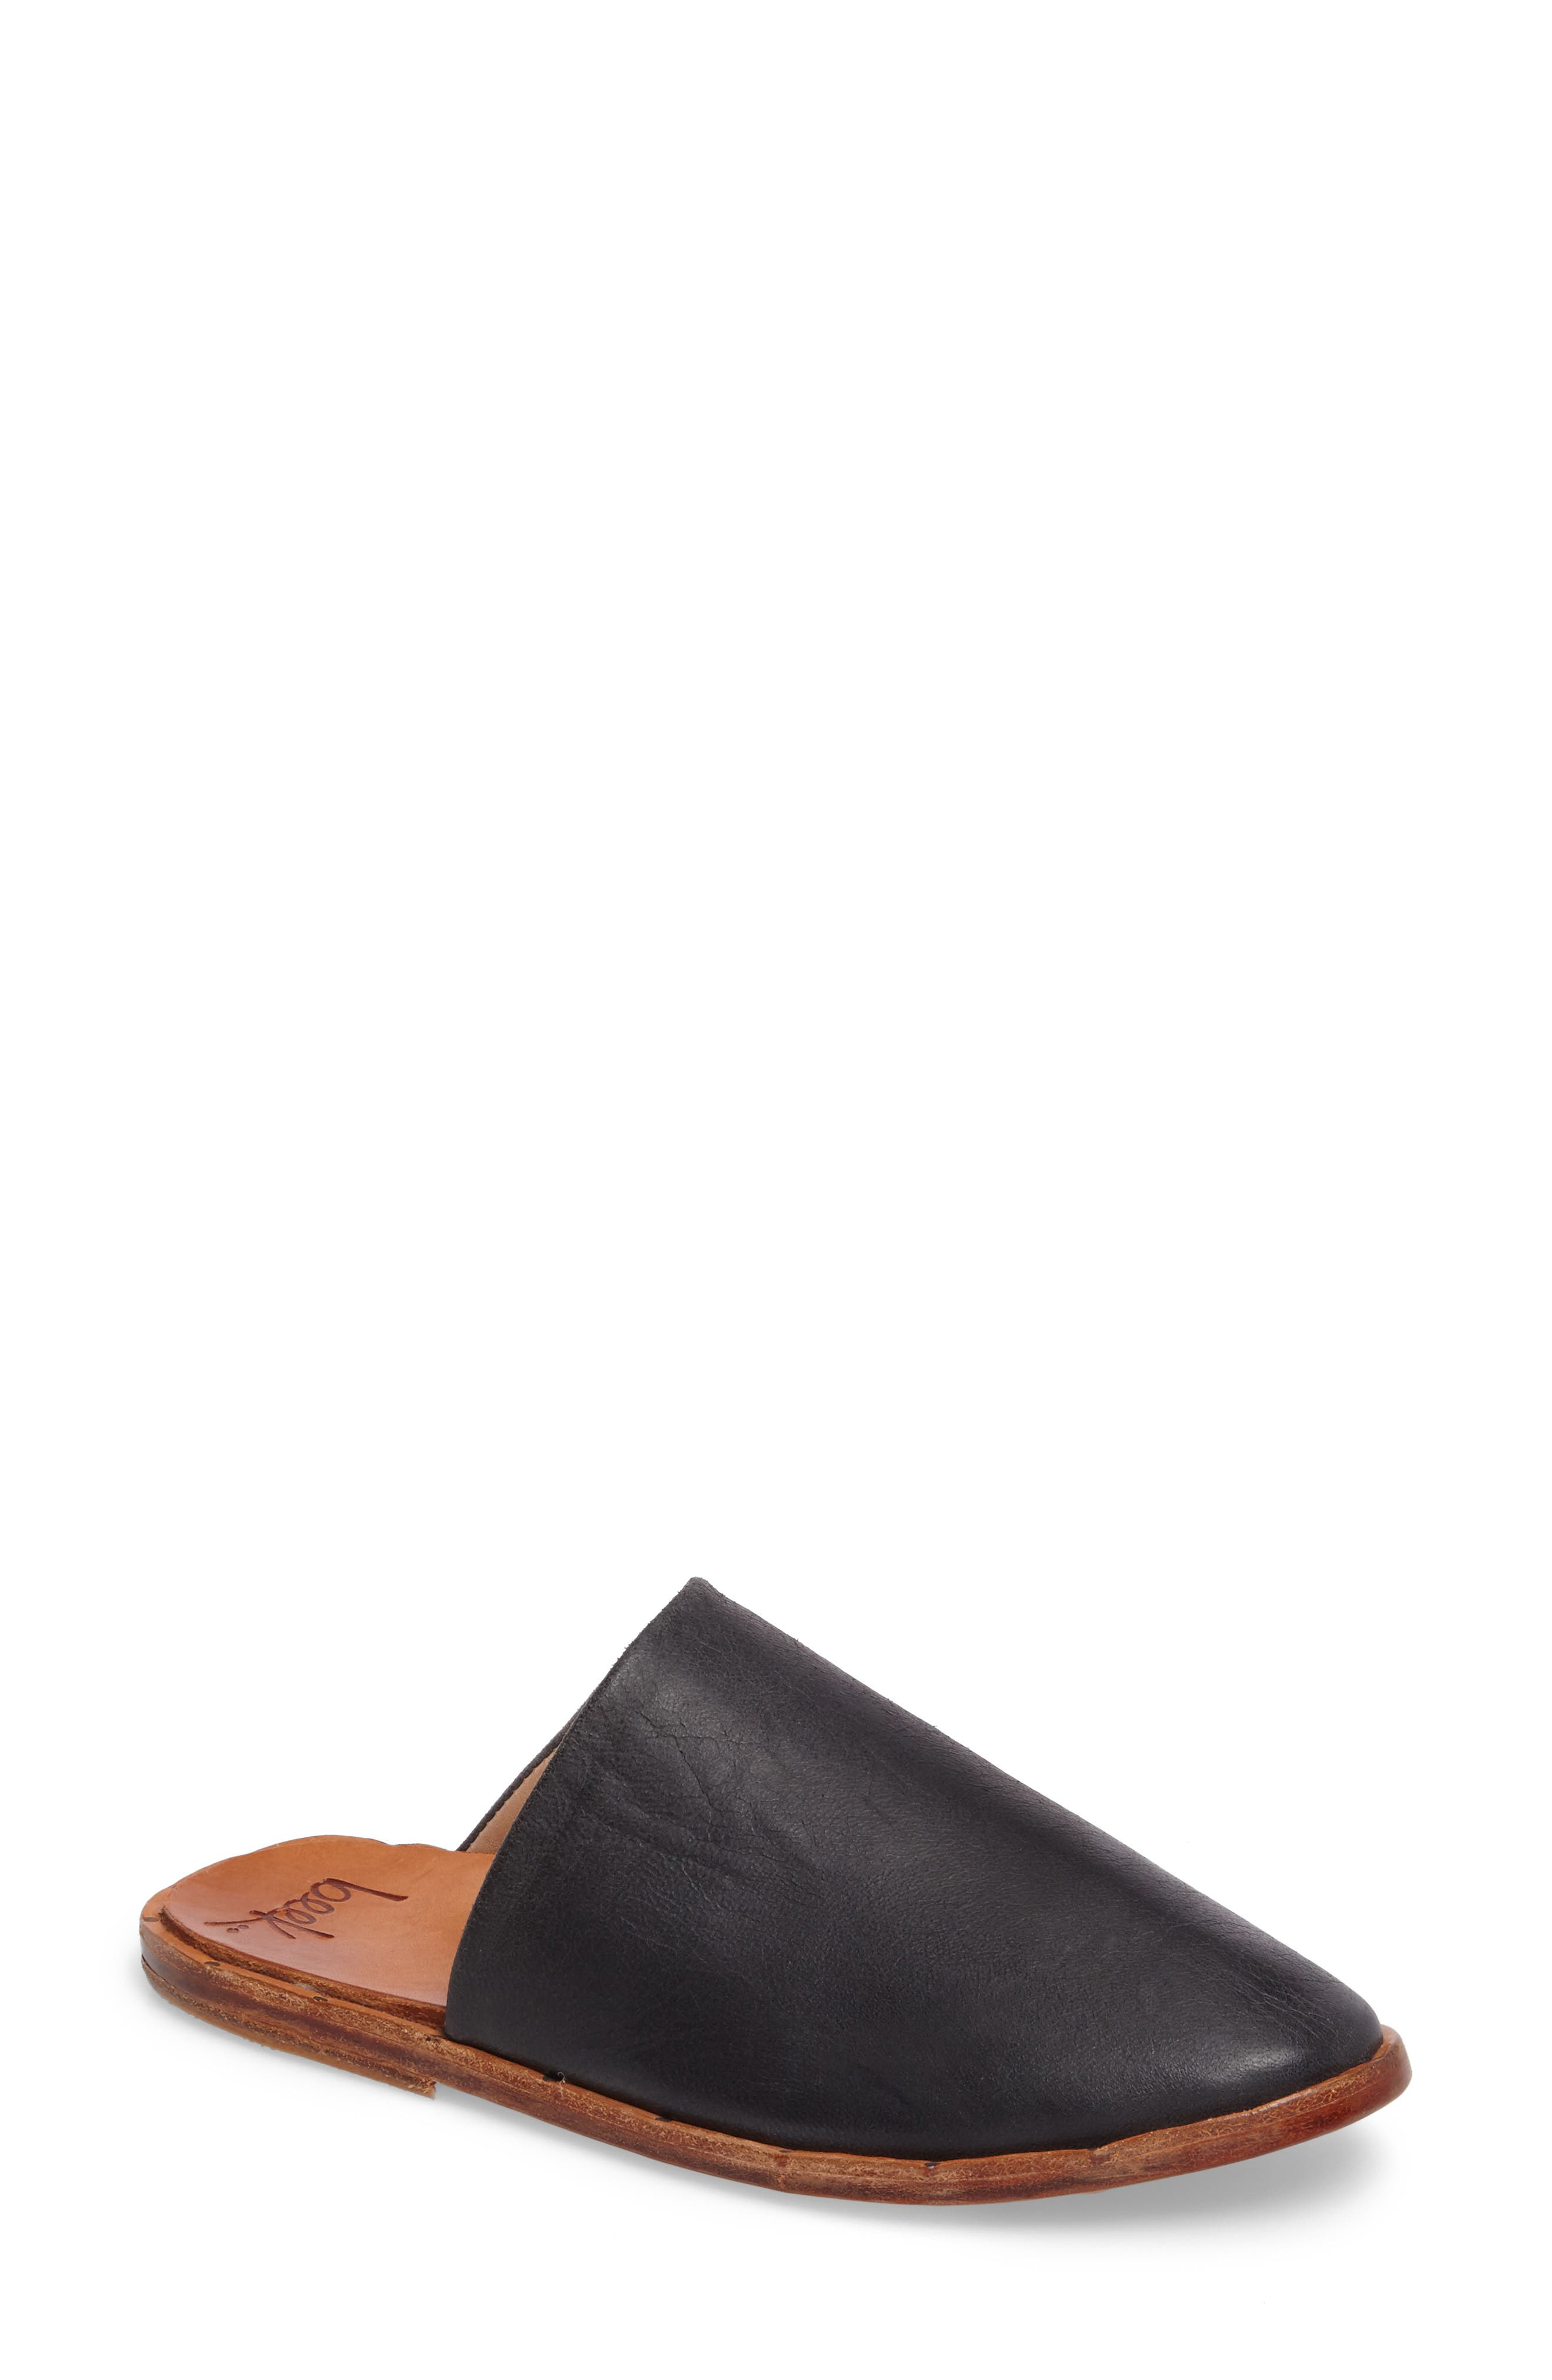 Distinctively crafted with the brand\\\'s signature molded arch that holds its shape wear after wear without feeling bulky, this flexible, all-leather mule features a modern, asymmetrical cut and a minimalist aesthetic. Style Name: Beek Seagull Mule (Women). Style Number: 5438528 2. Available in stores.